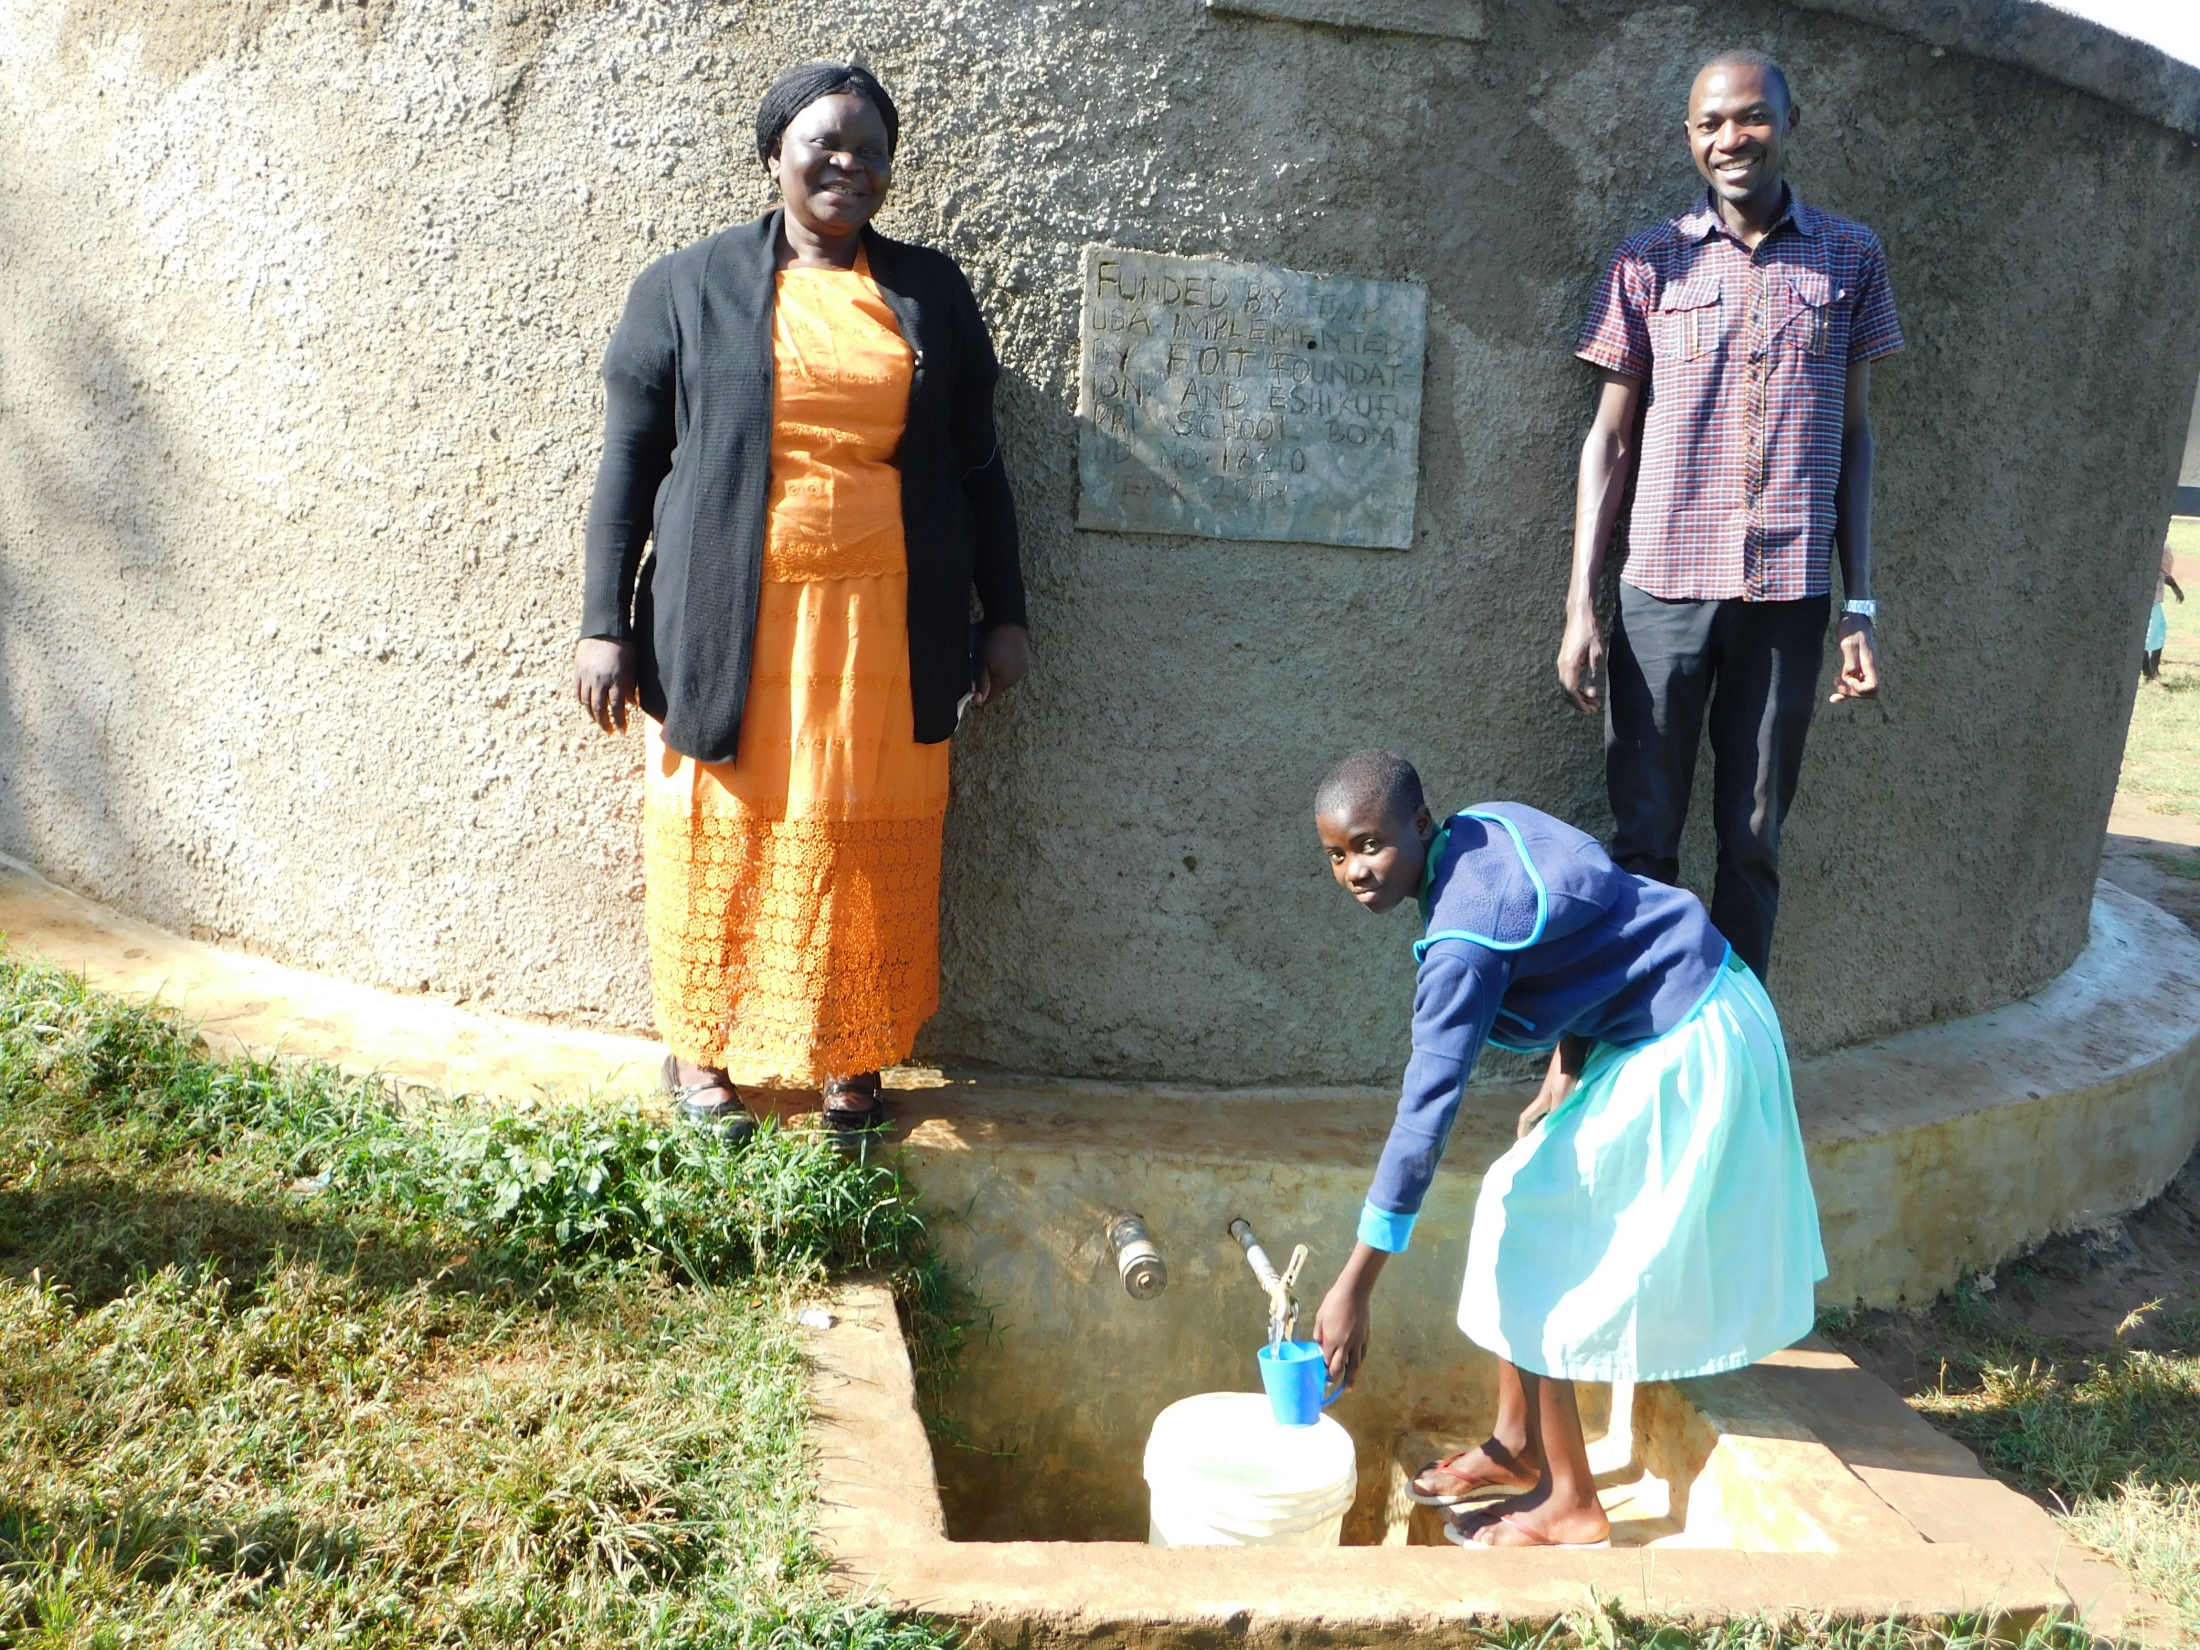 The Water Project : 5-kenya18310-head-teacher-osundwa-vivian-and-field-officer-protus-at-the-rain-tank